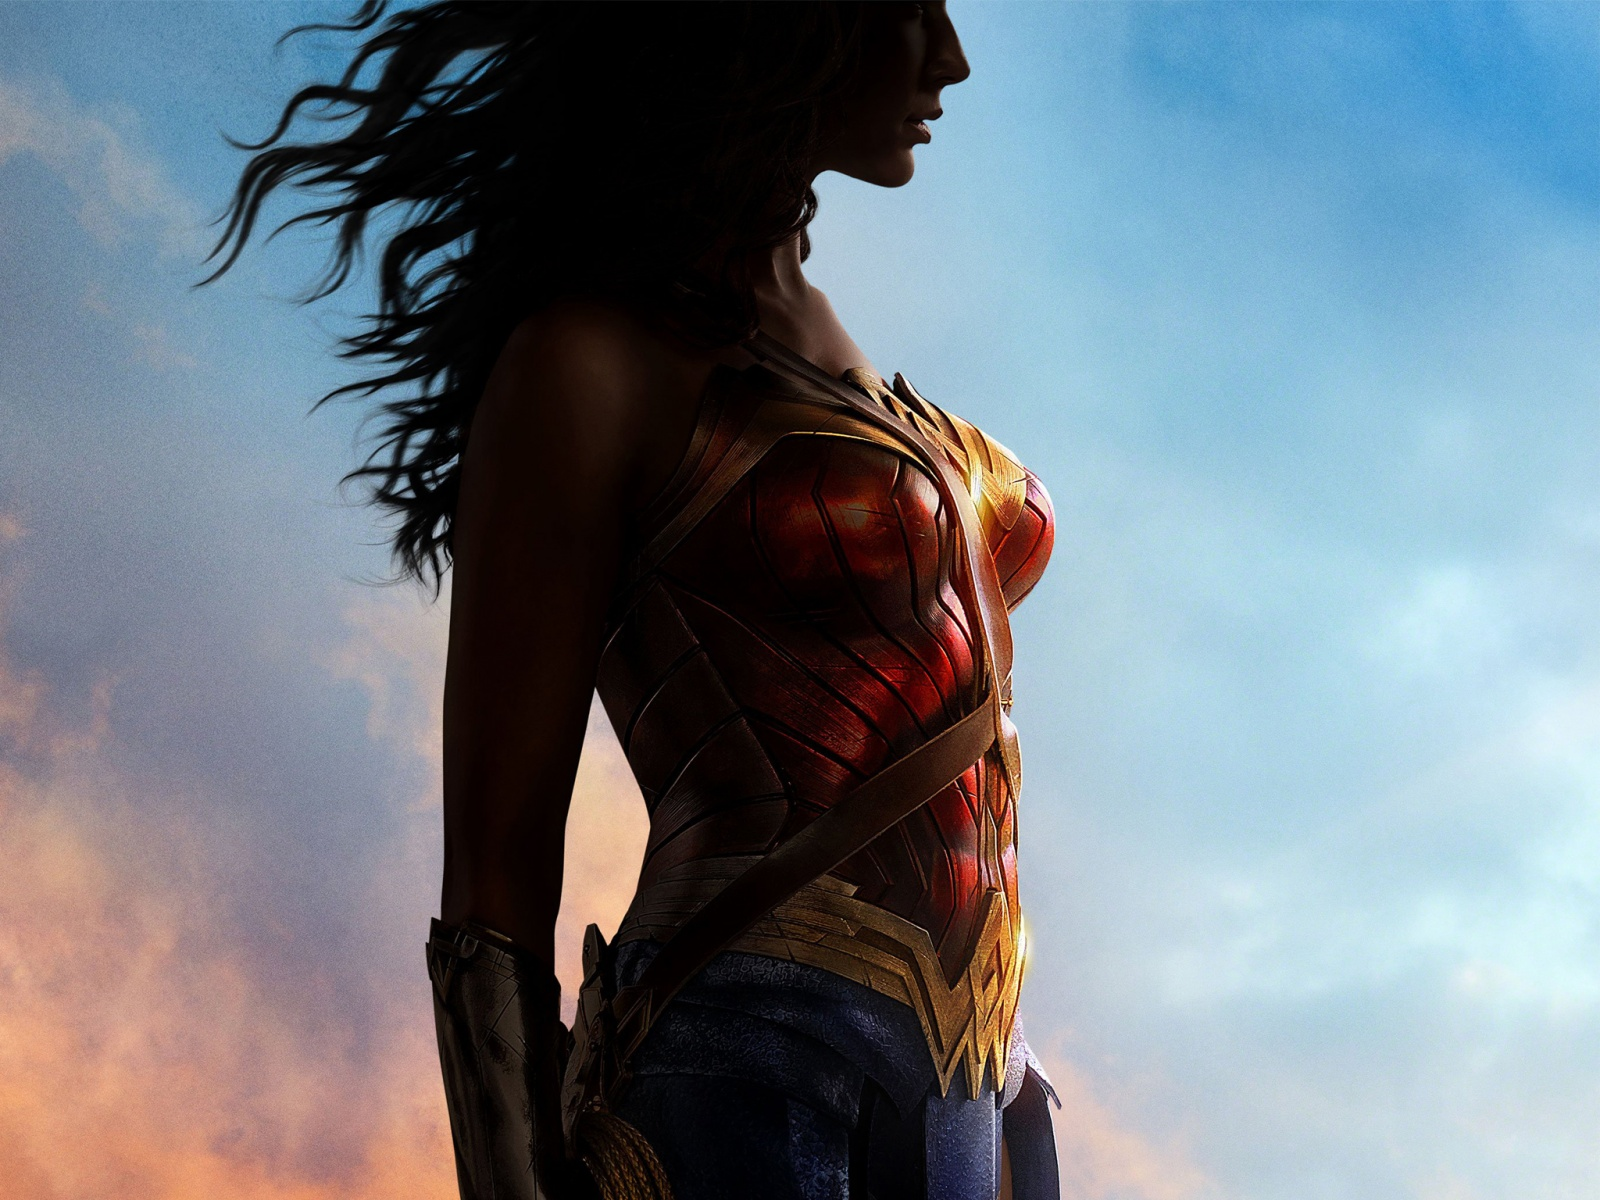 2017 Wonder Woman Wallpapers: 2017 Wonder Woman Wallpapers In Jpg Format For Free Download